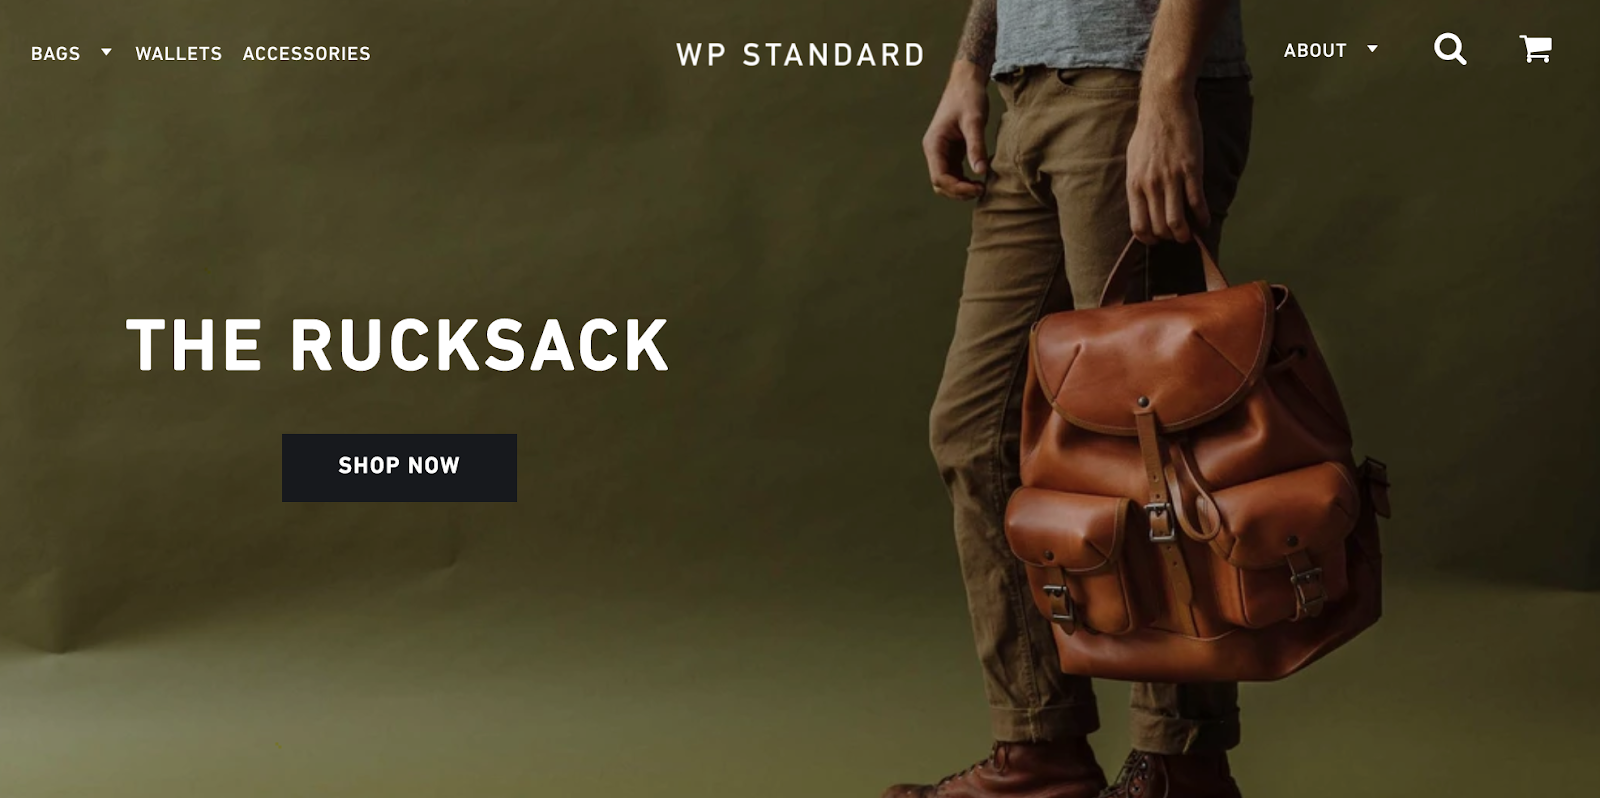 WP Standard homepage with man holding a backpack in the background